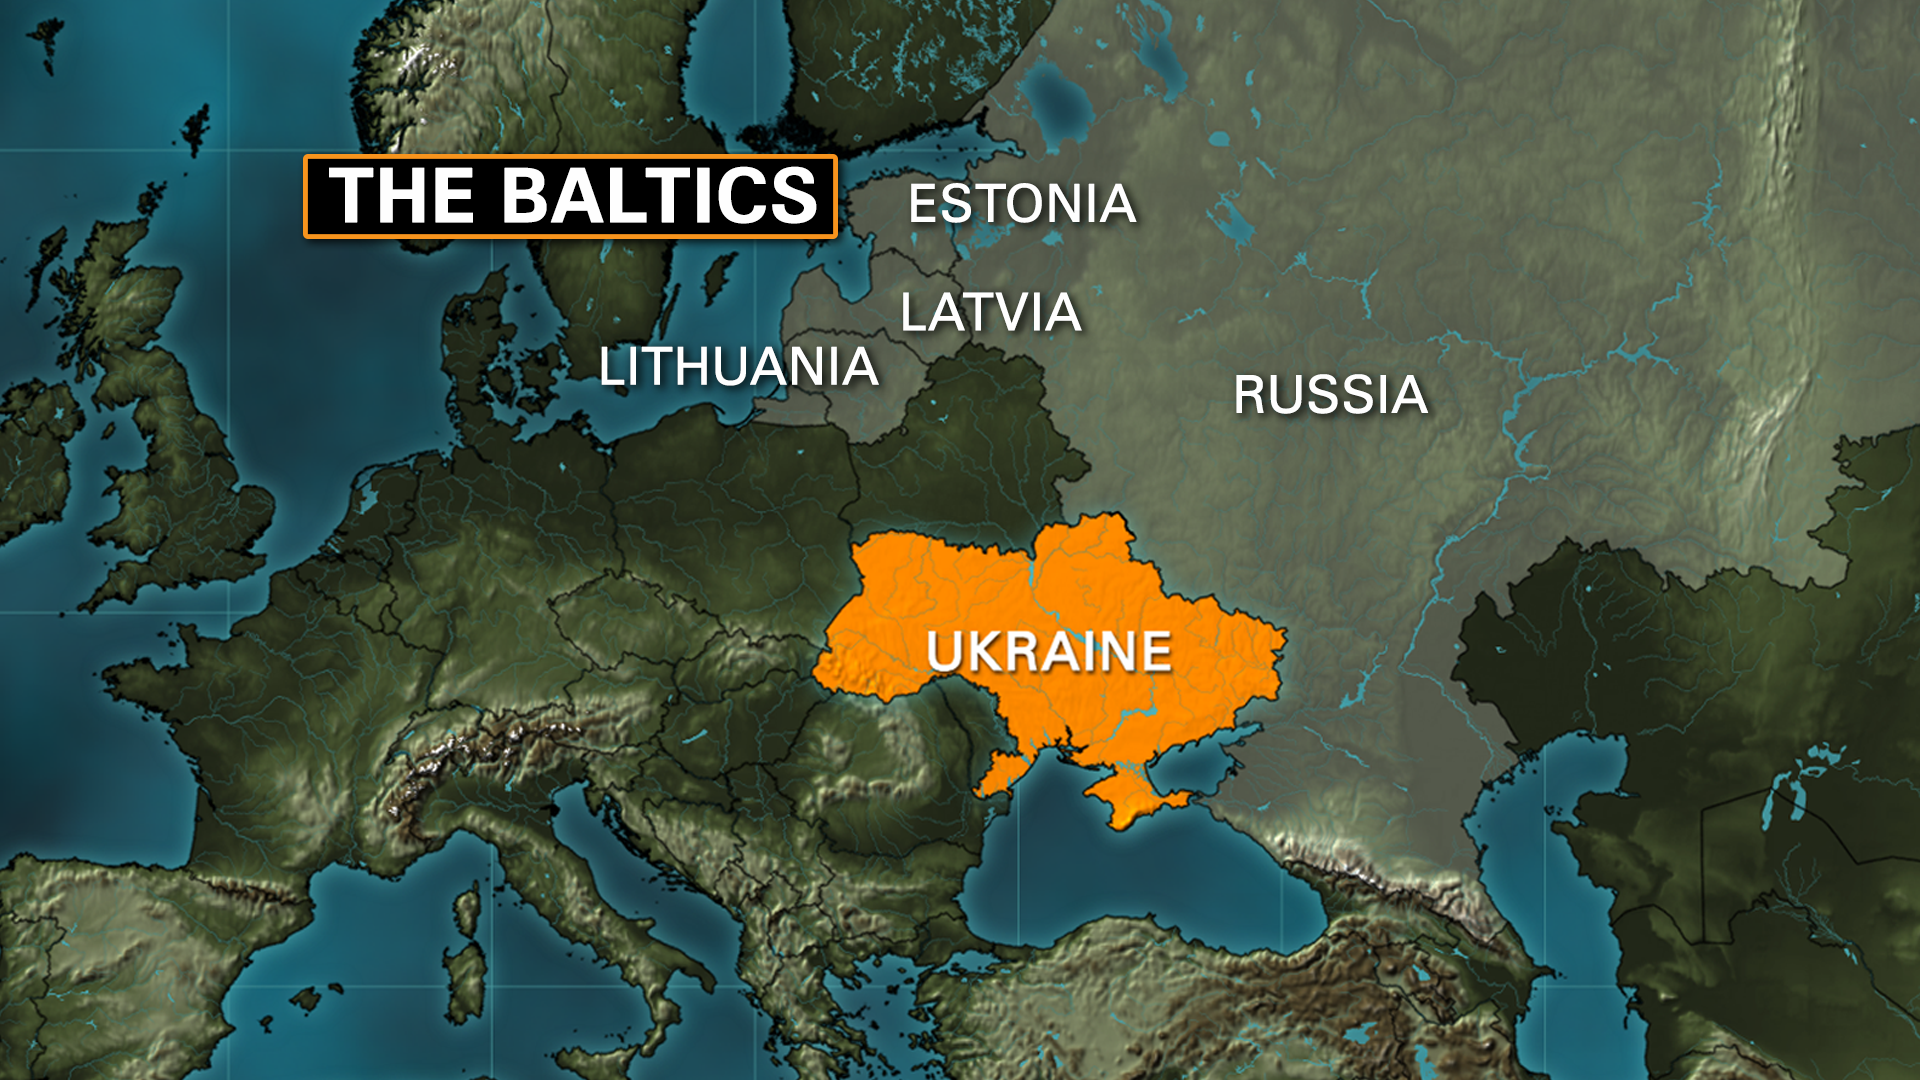 SOTU EXTRA: The Baltics and Russia's next move